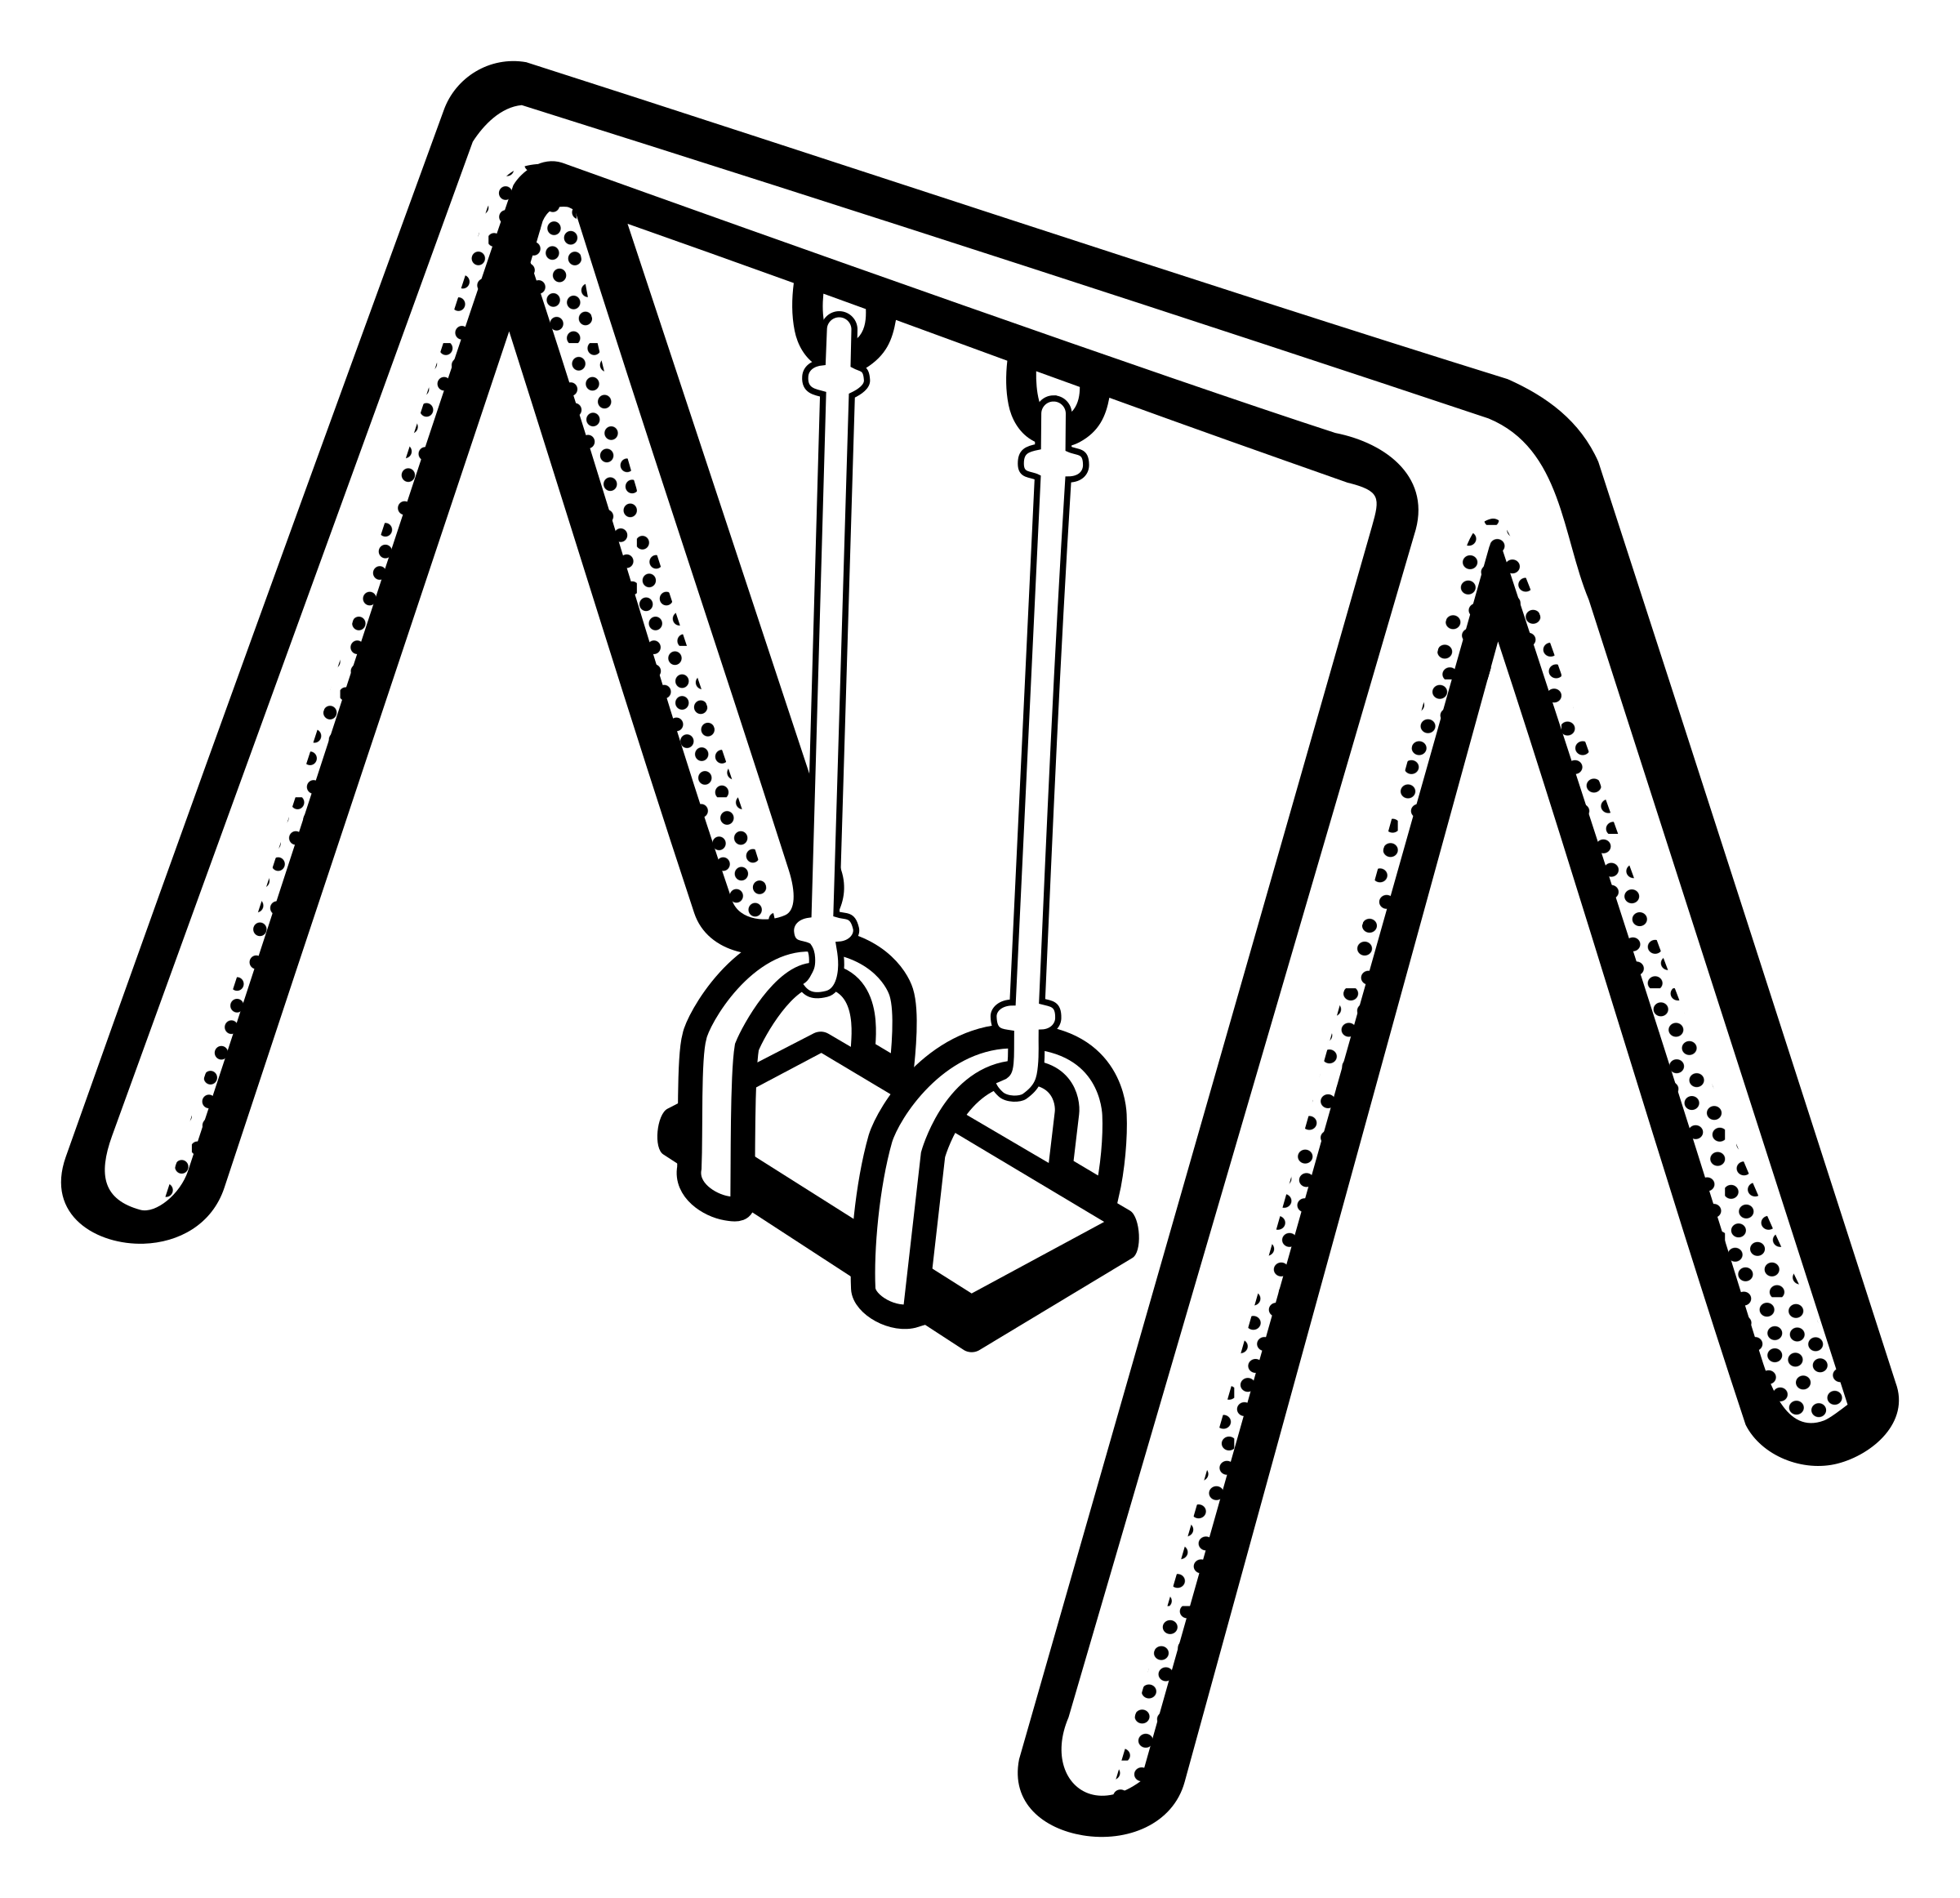 Swing clipart black and white Clip Free Clipart Art Swing